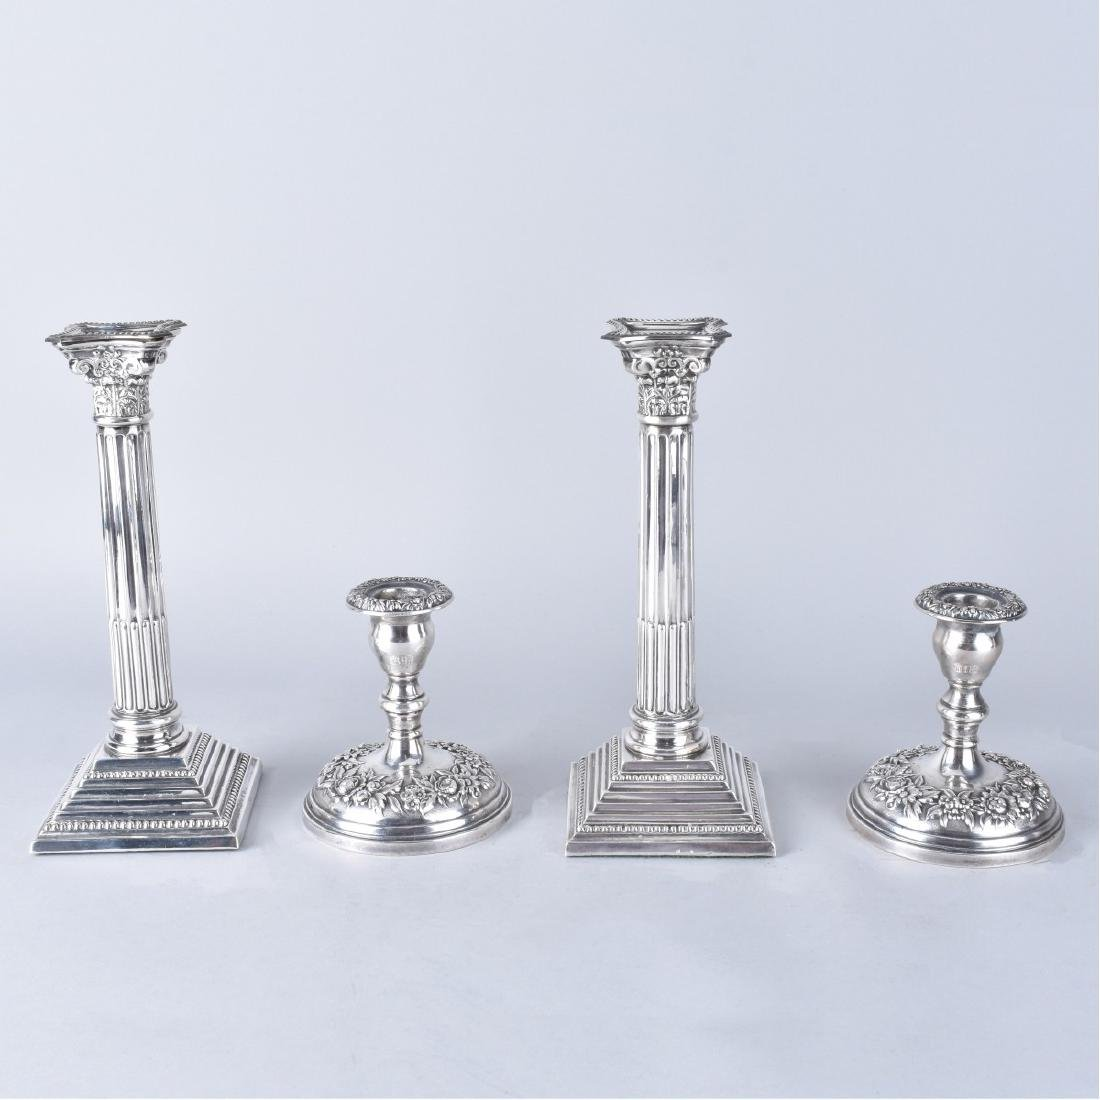 Two Pair Silver Candlesticks